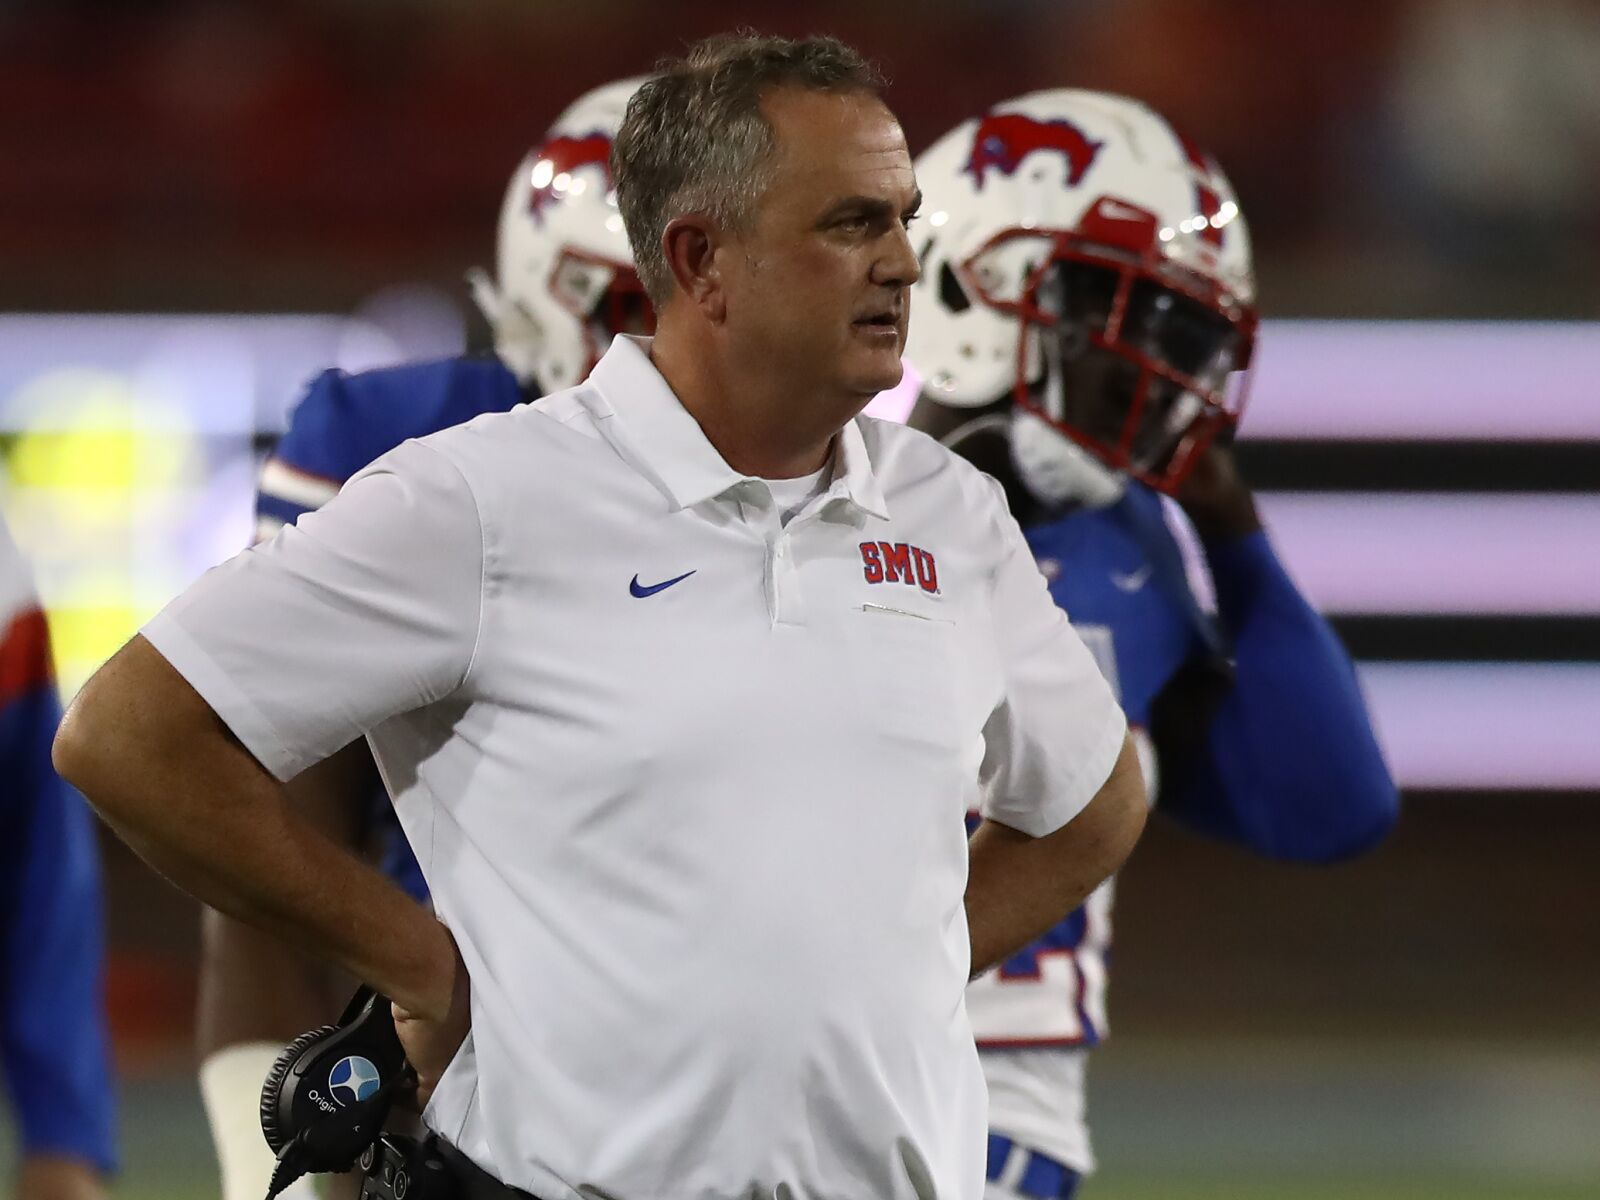 Texas Football: Ra'Shaad Samples staying as assistant at SMU